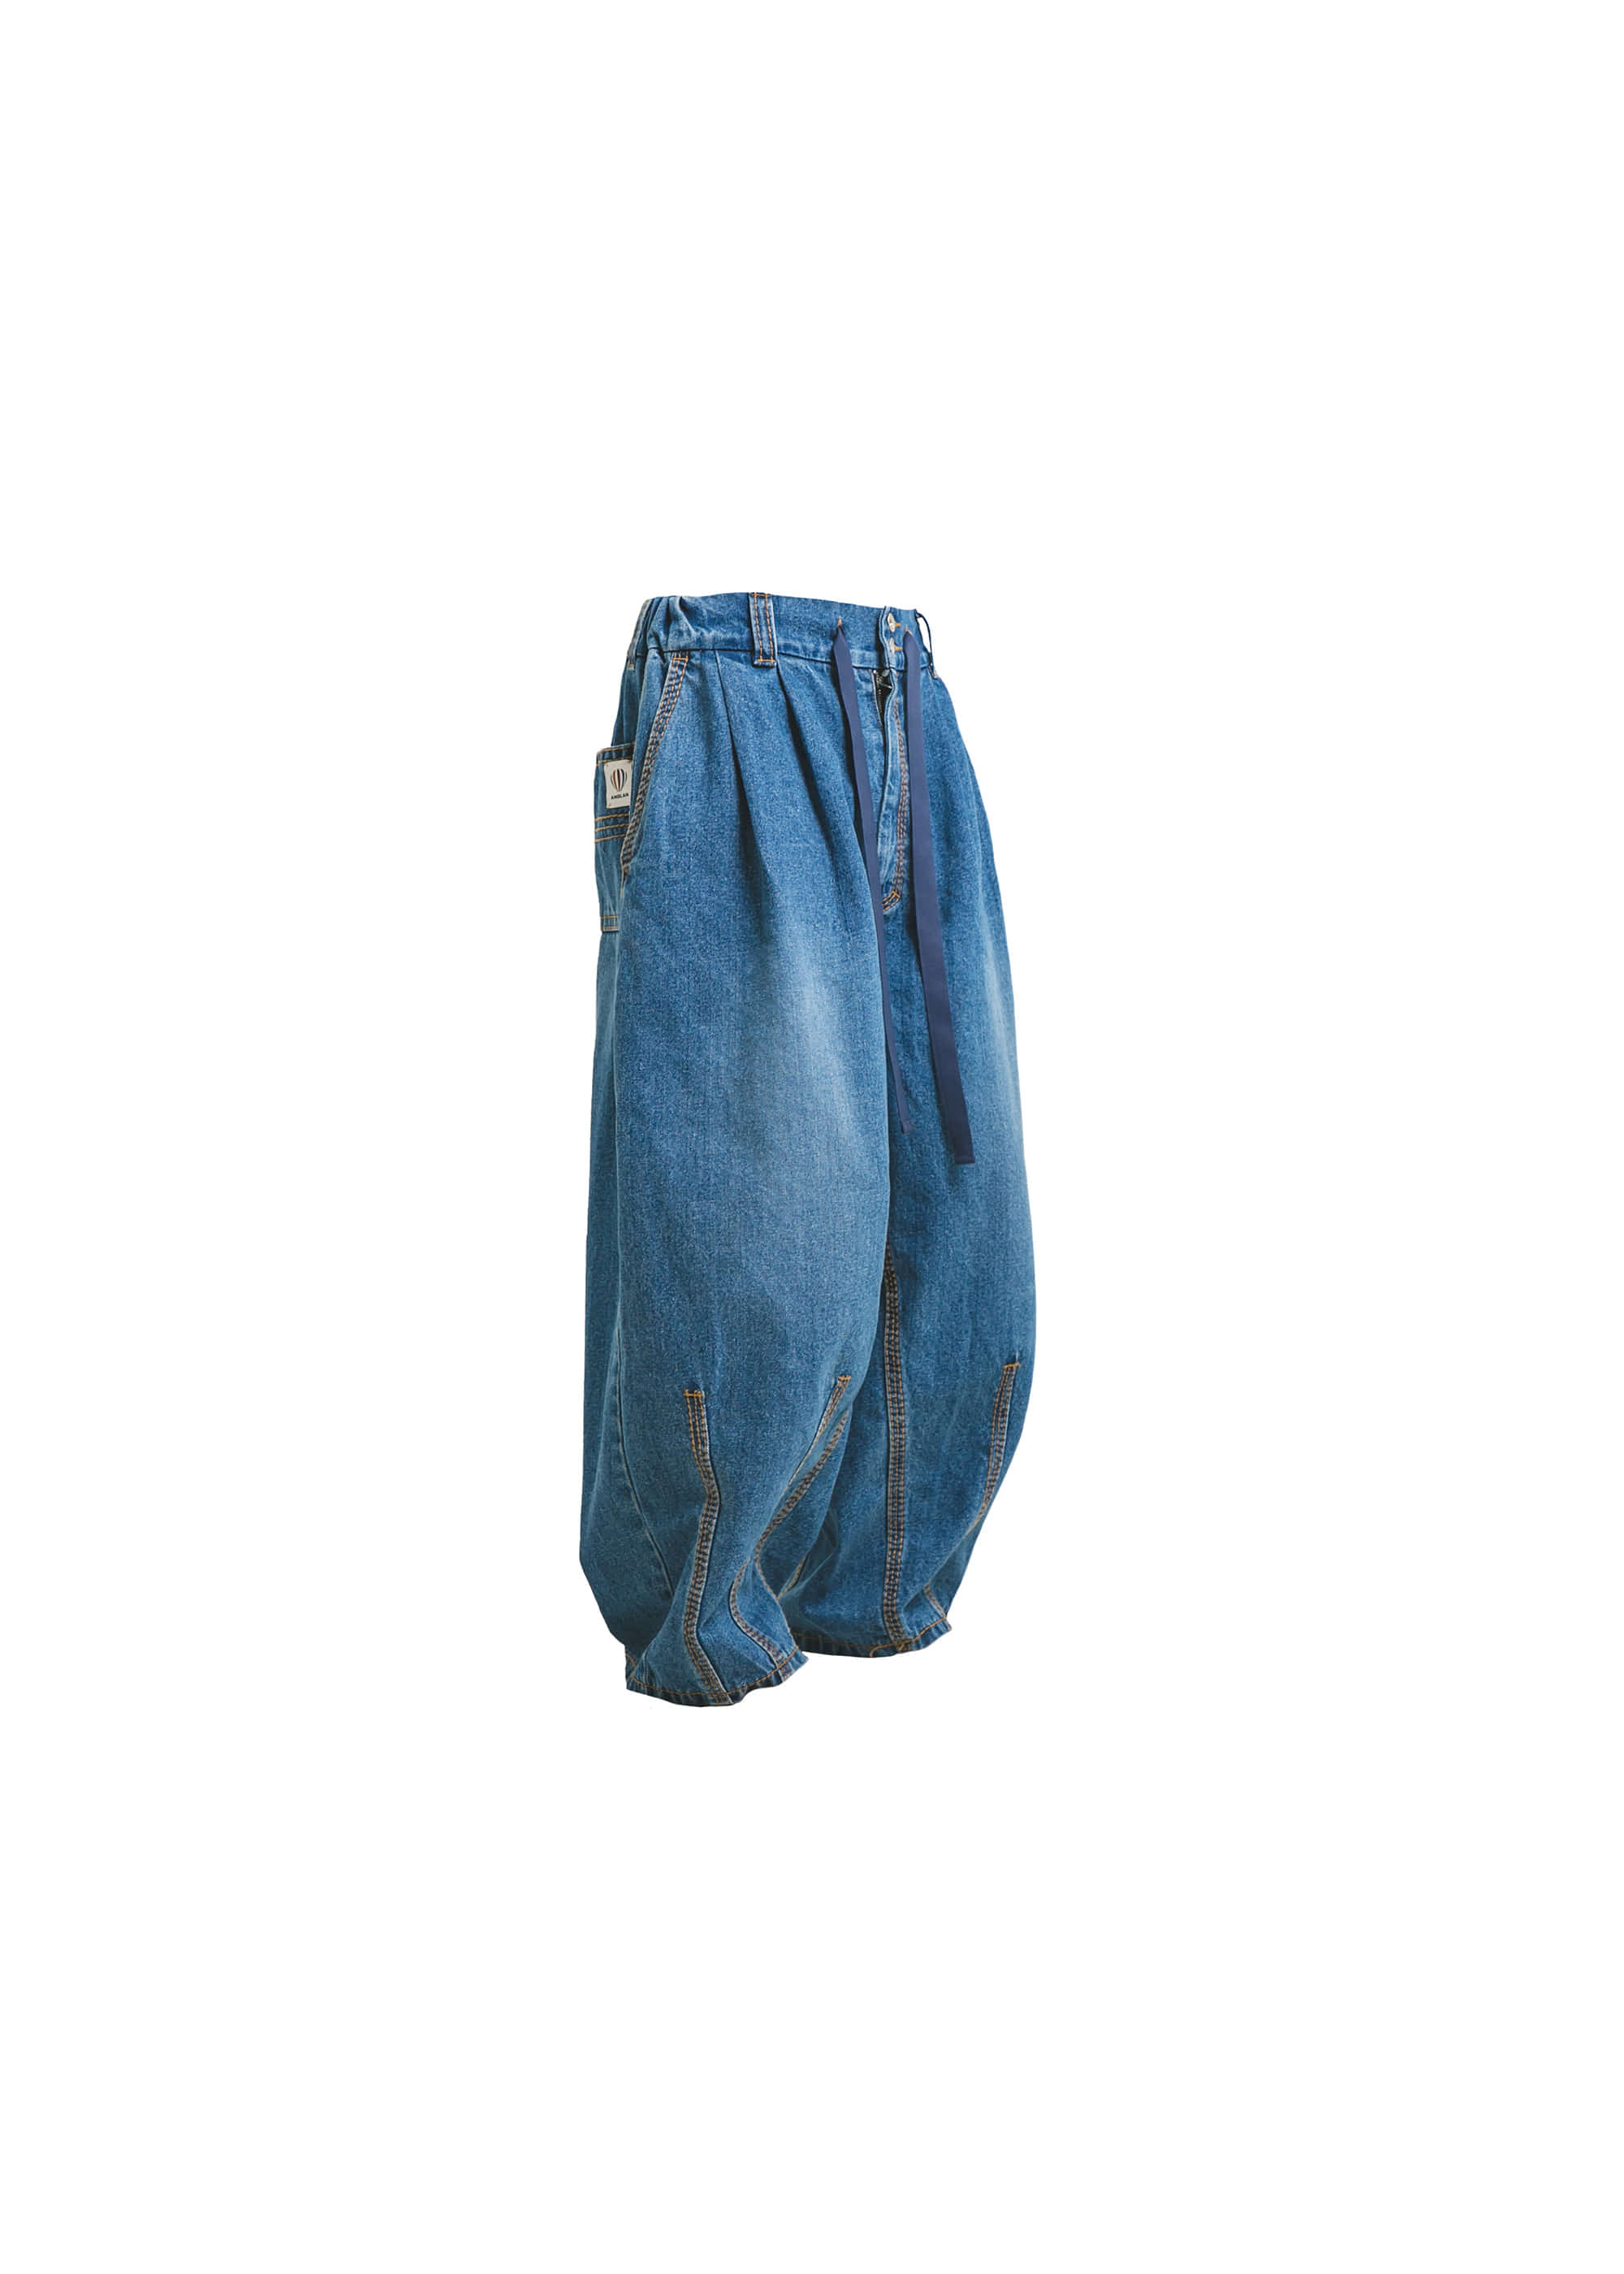 [AG] Big Stitch Denim Balloon Pants - Mid Blue